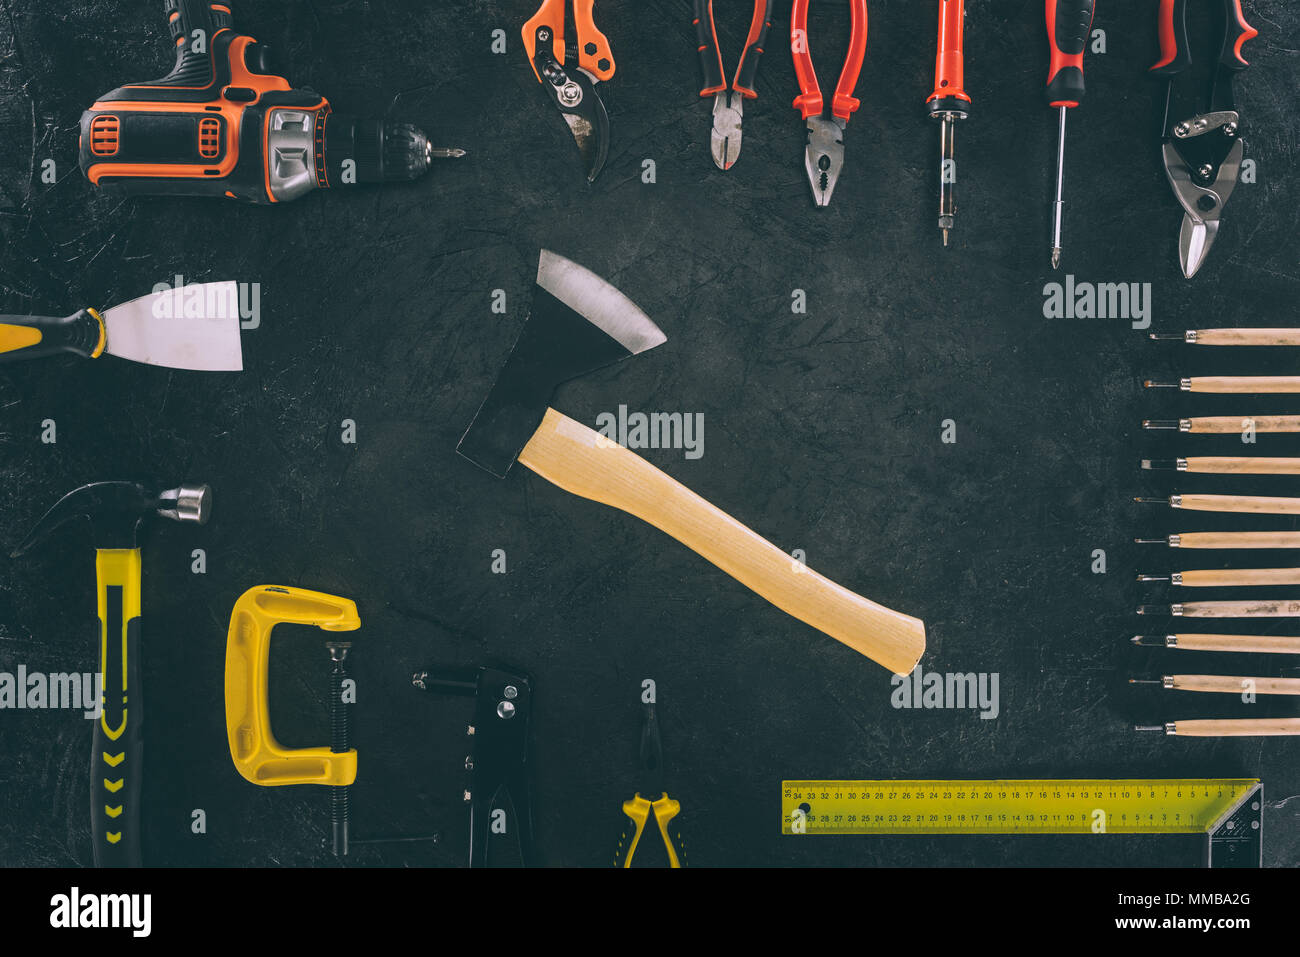 flat lay with axe and various arranged carpentry equipment on dark surface Stock Photo